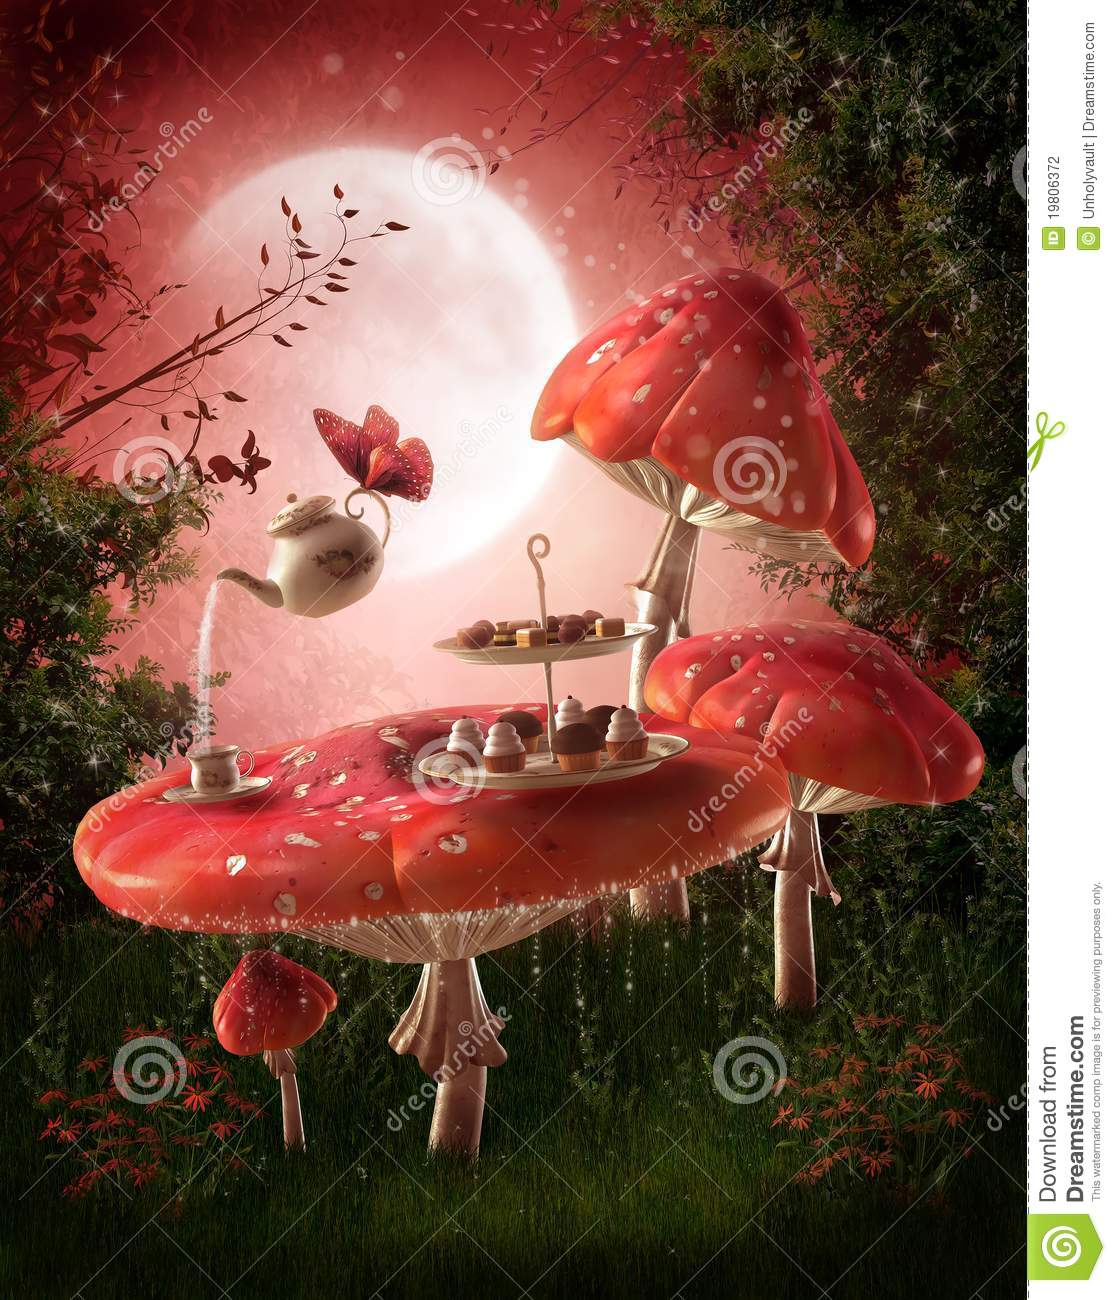 Fairy Garden With Red Mushrooms Stock Photography Image